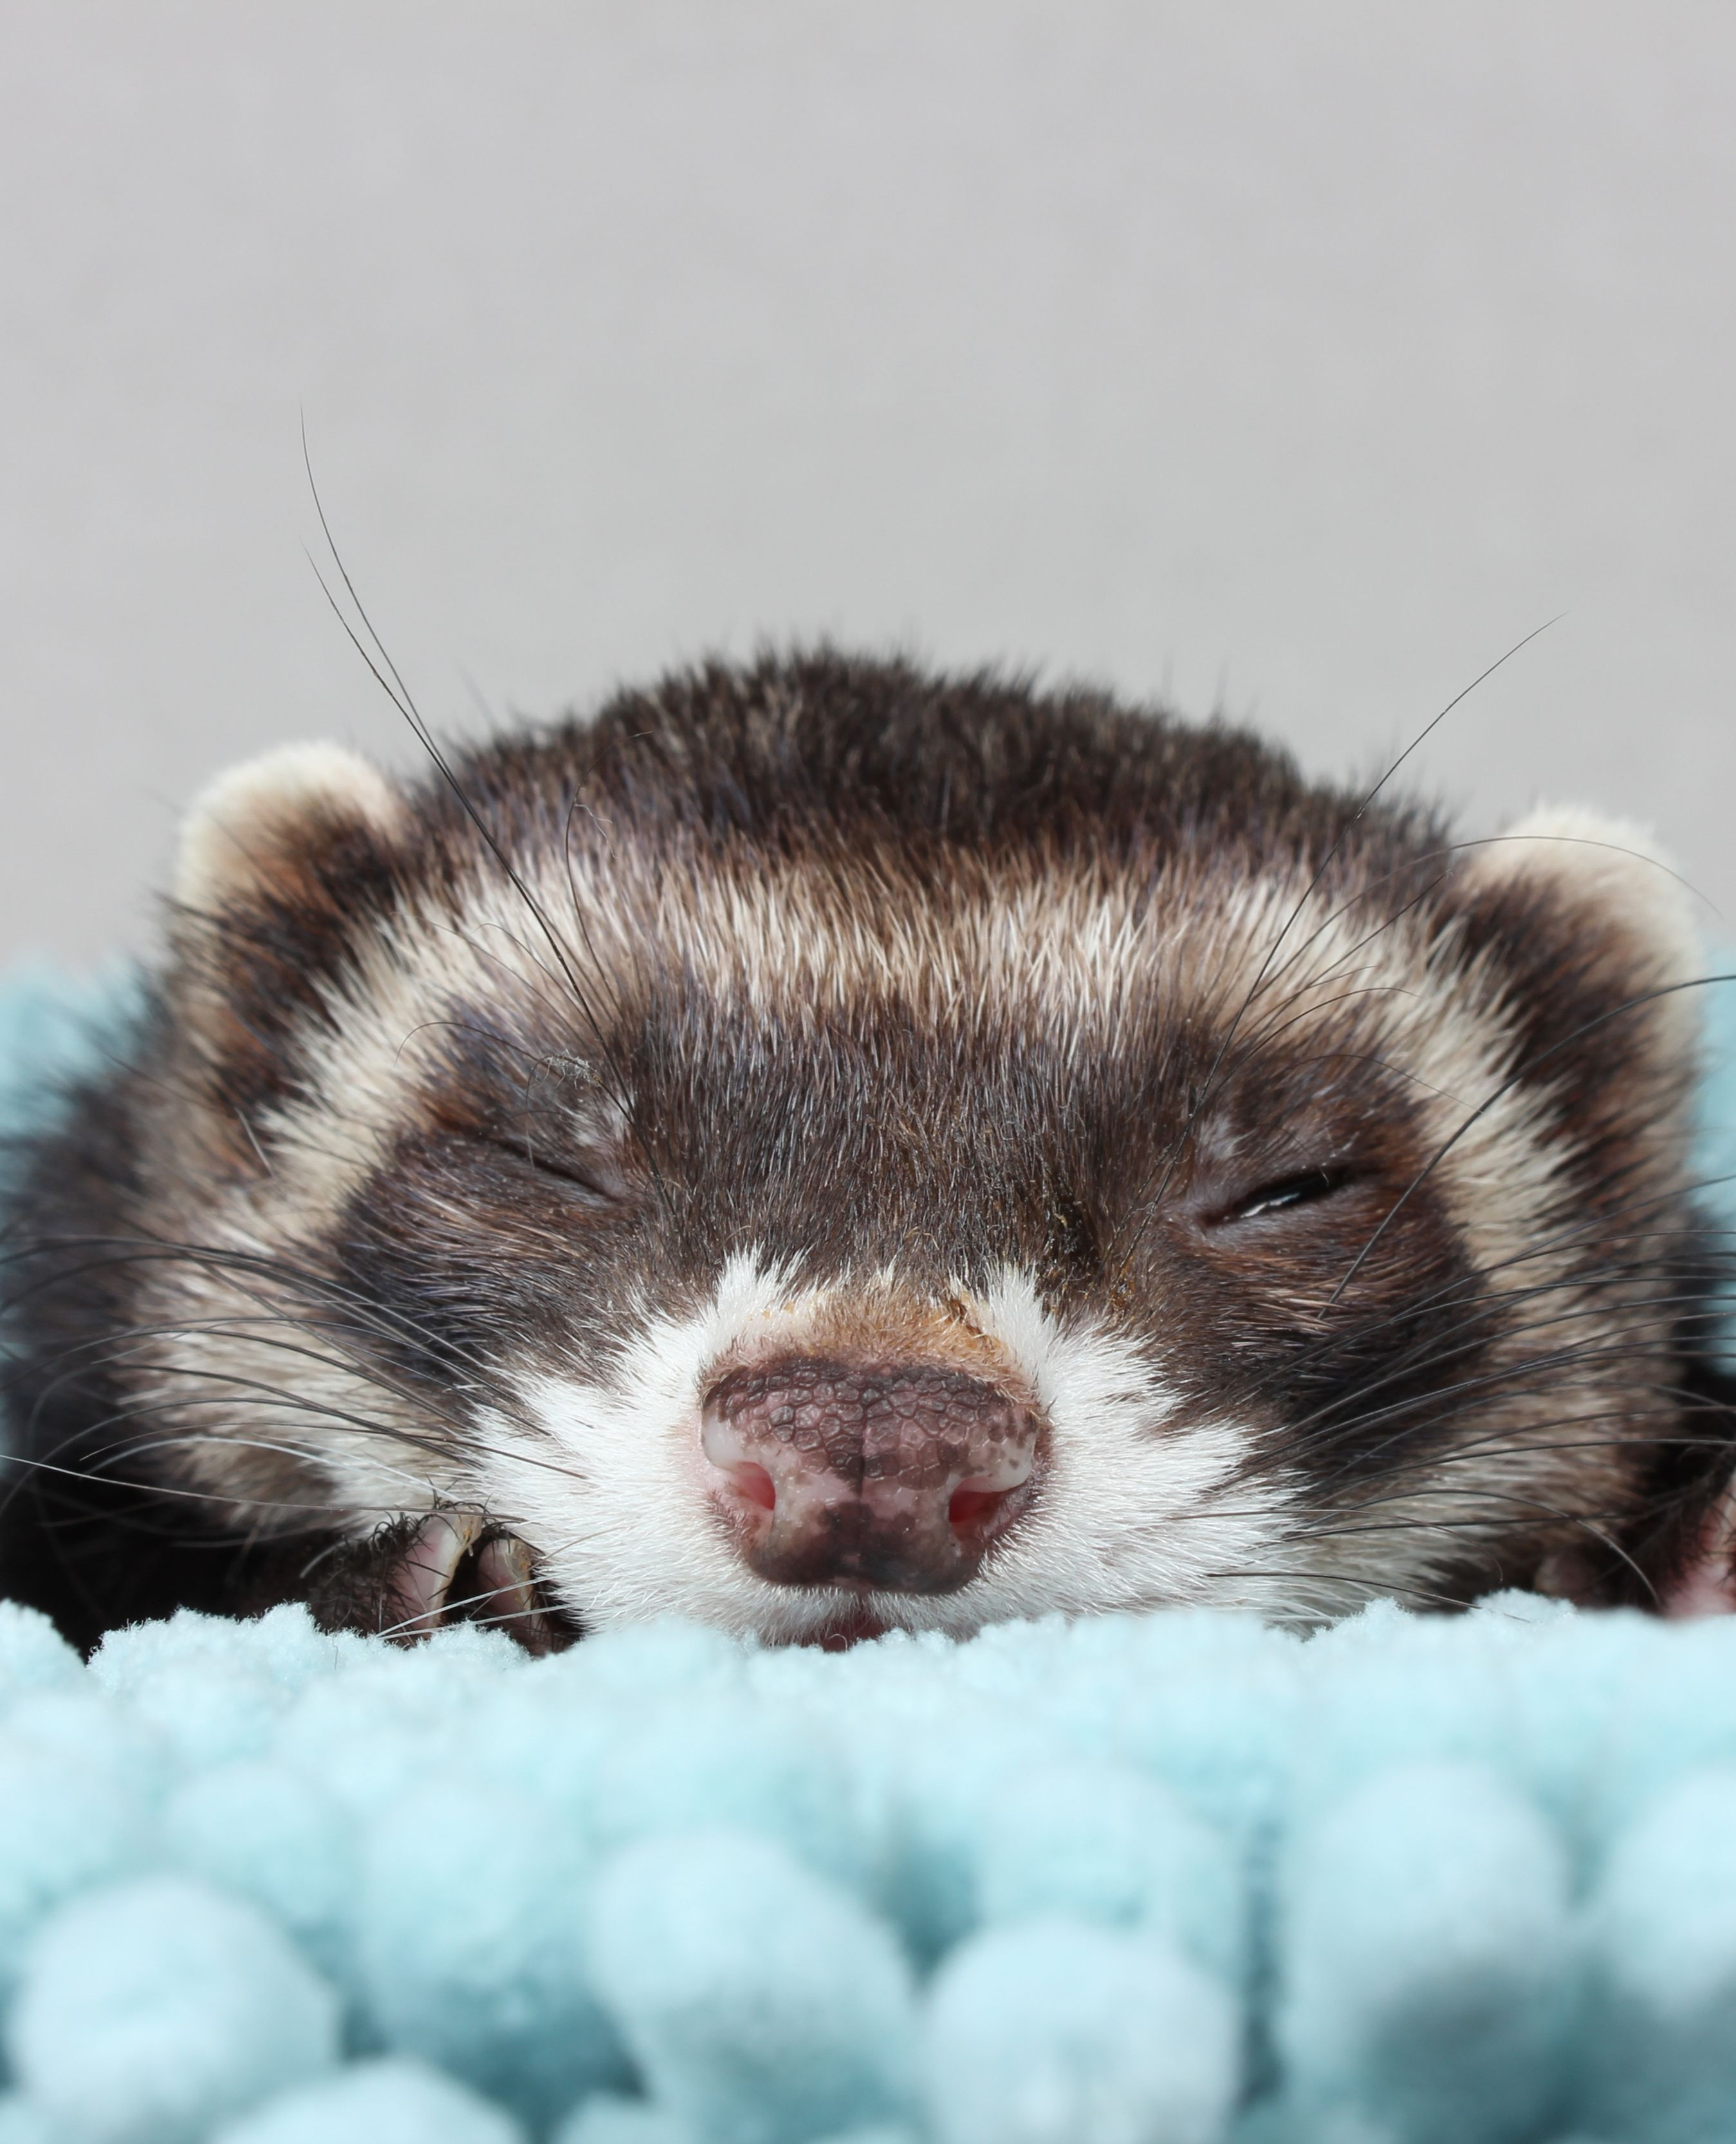 21 Cute Ferret Photos That Will Make You Smile The Modern Ferret Cute Ferrets Ferret Baby Ferrets